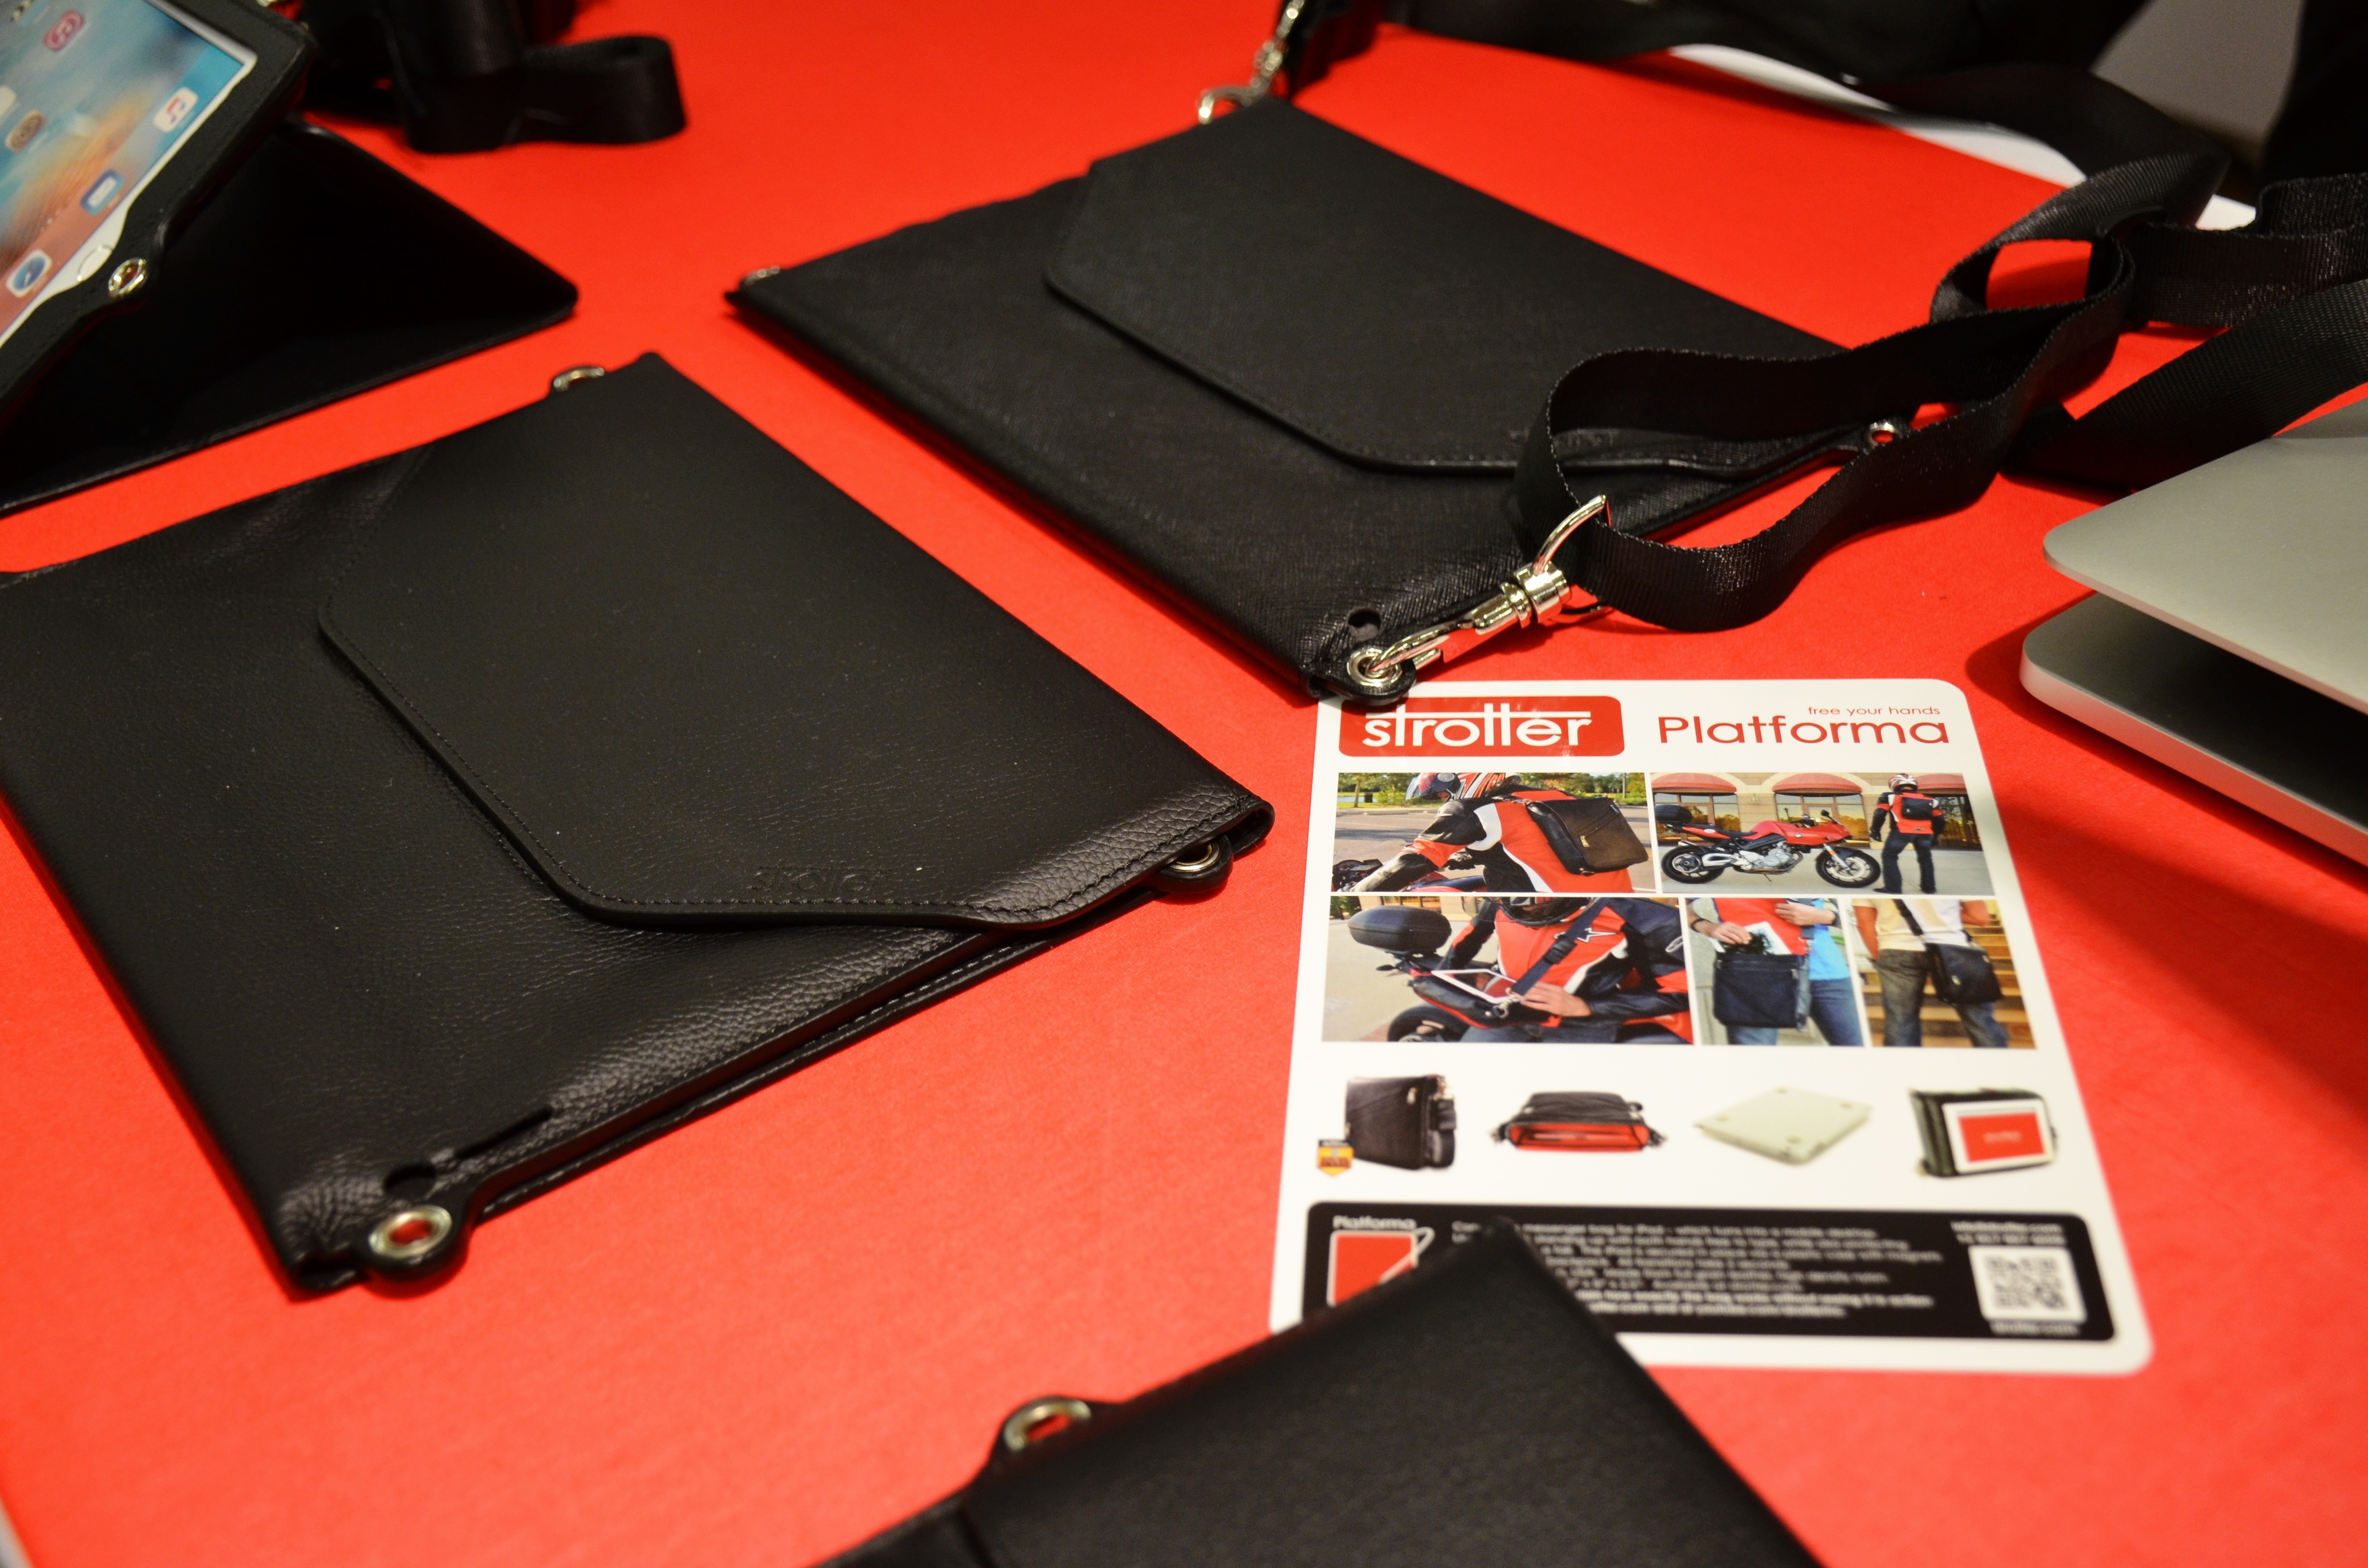 Strotters Across hands free IPad case